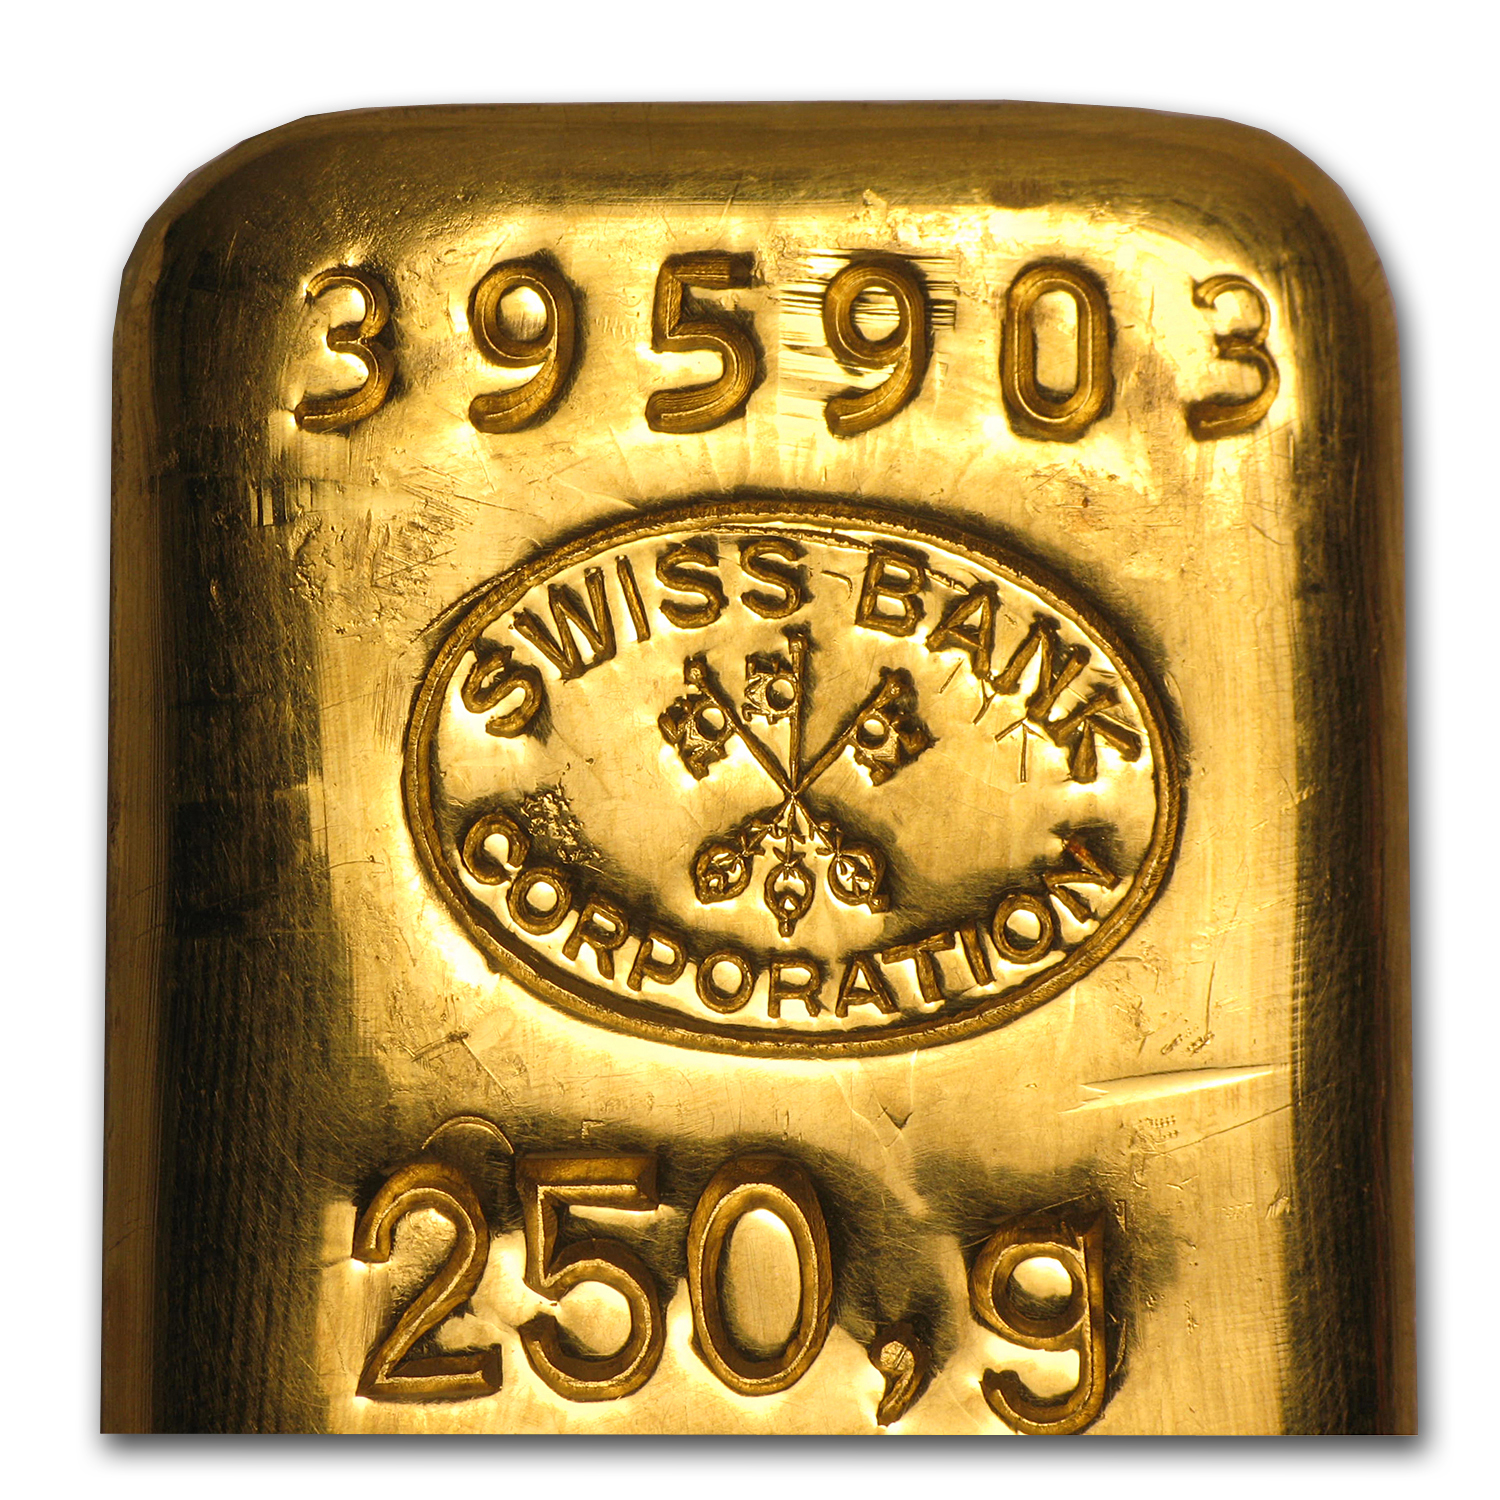 250 gram Swiss Bank Corporation Gold Bar .9999 Fine